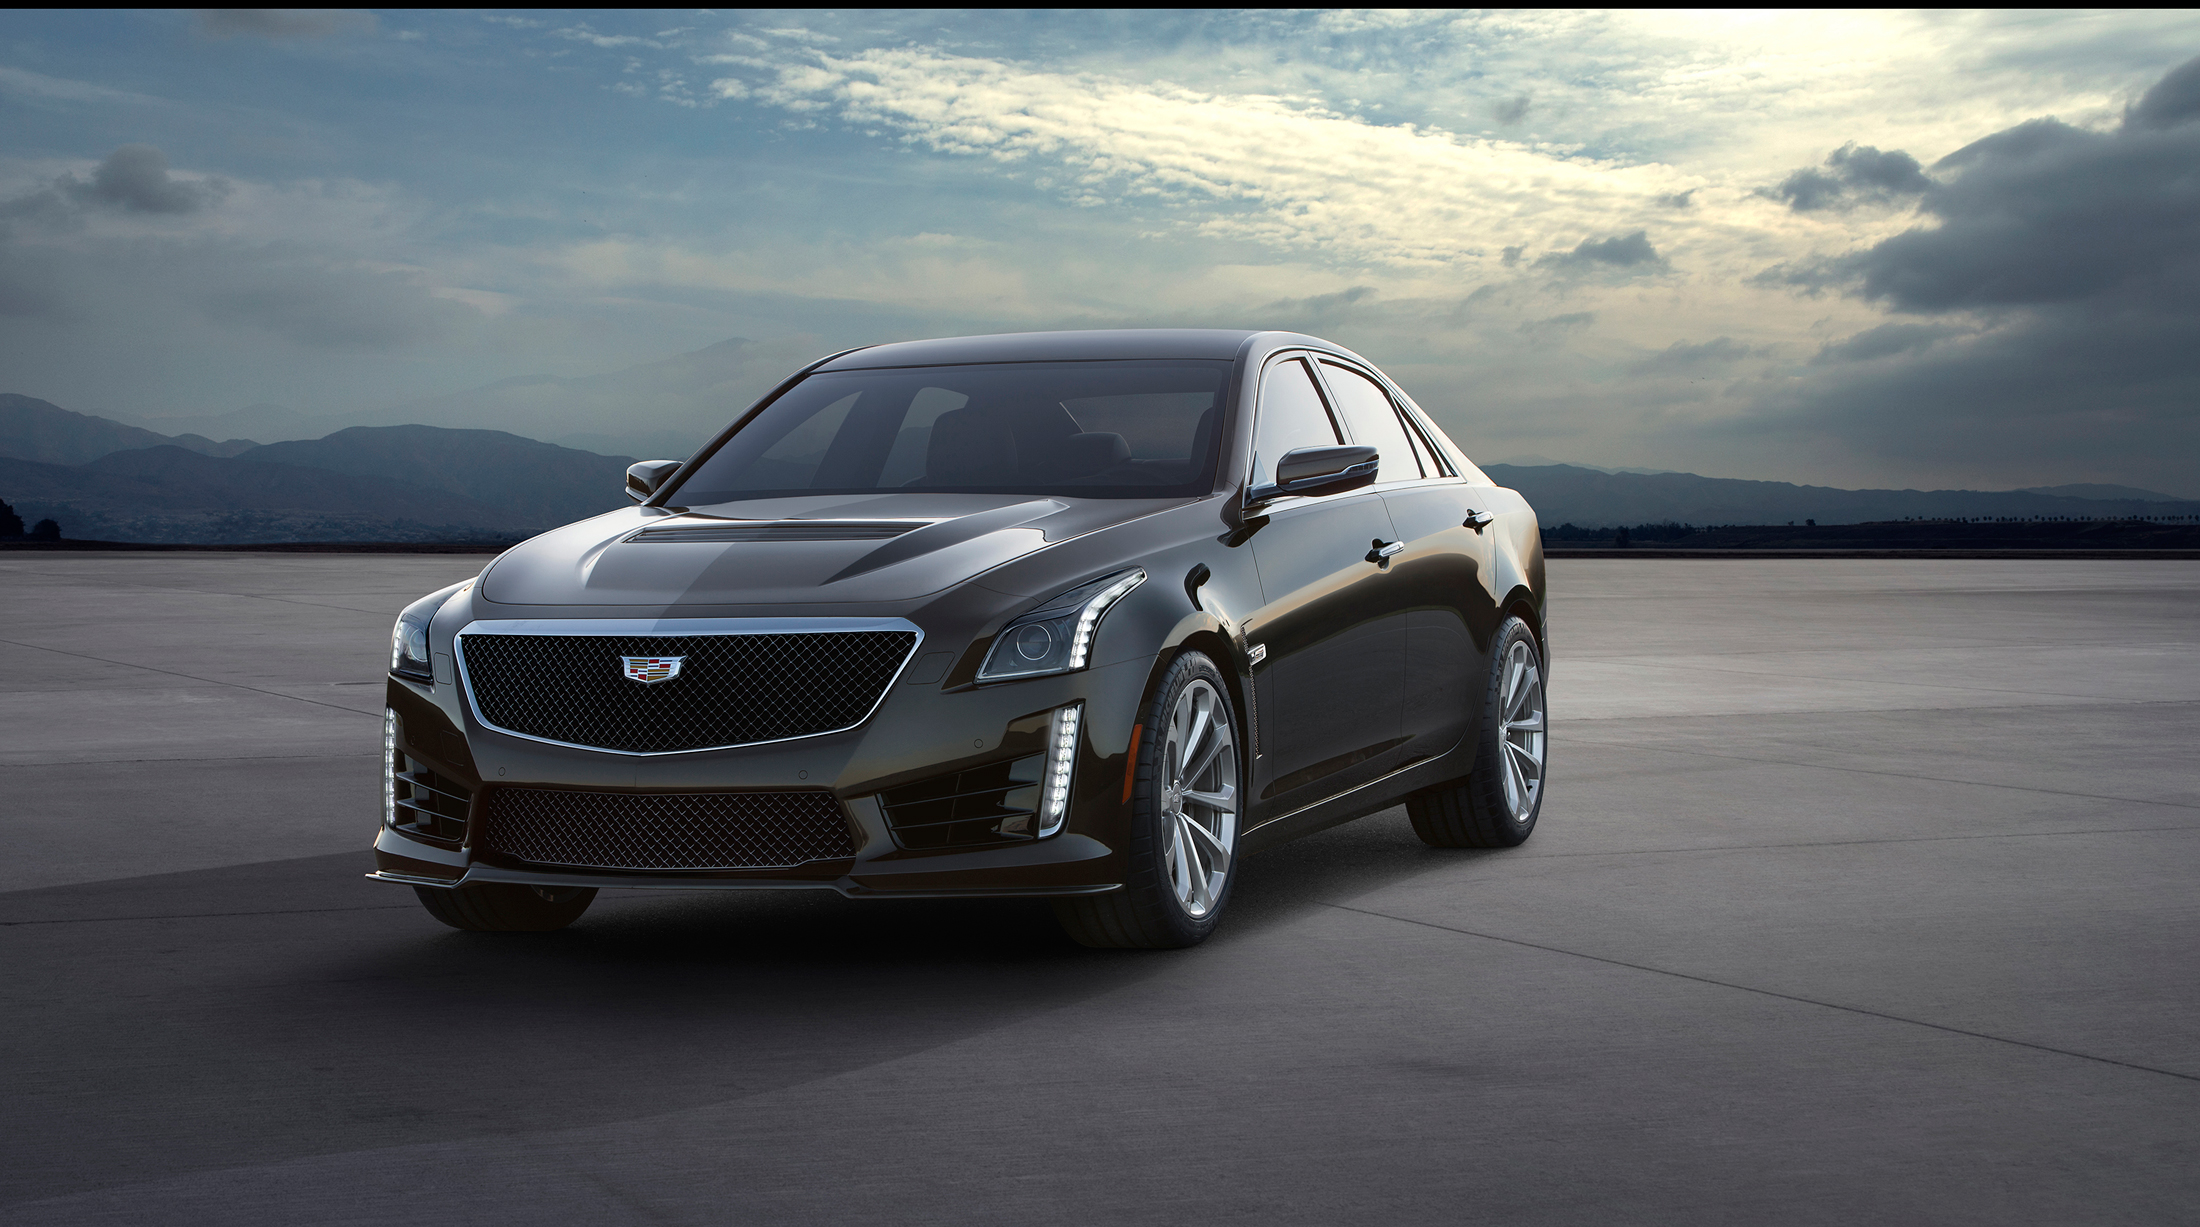 ctsv coupe horsepower leaked v specs price atsv watch cadillac cts youtube rendering ats